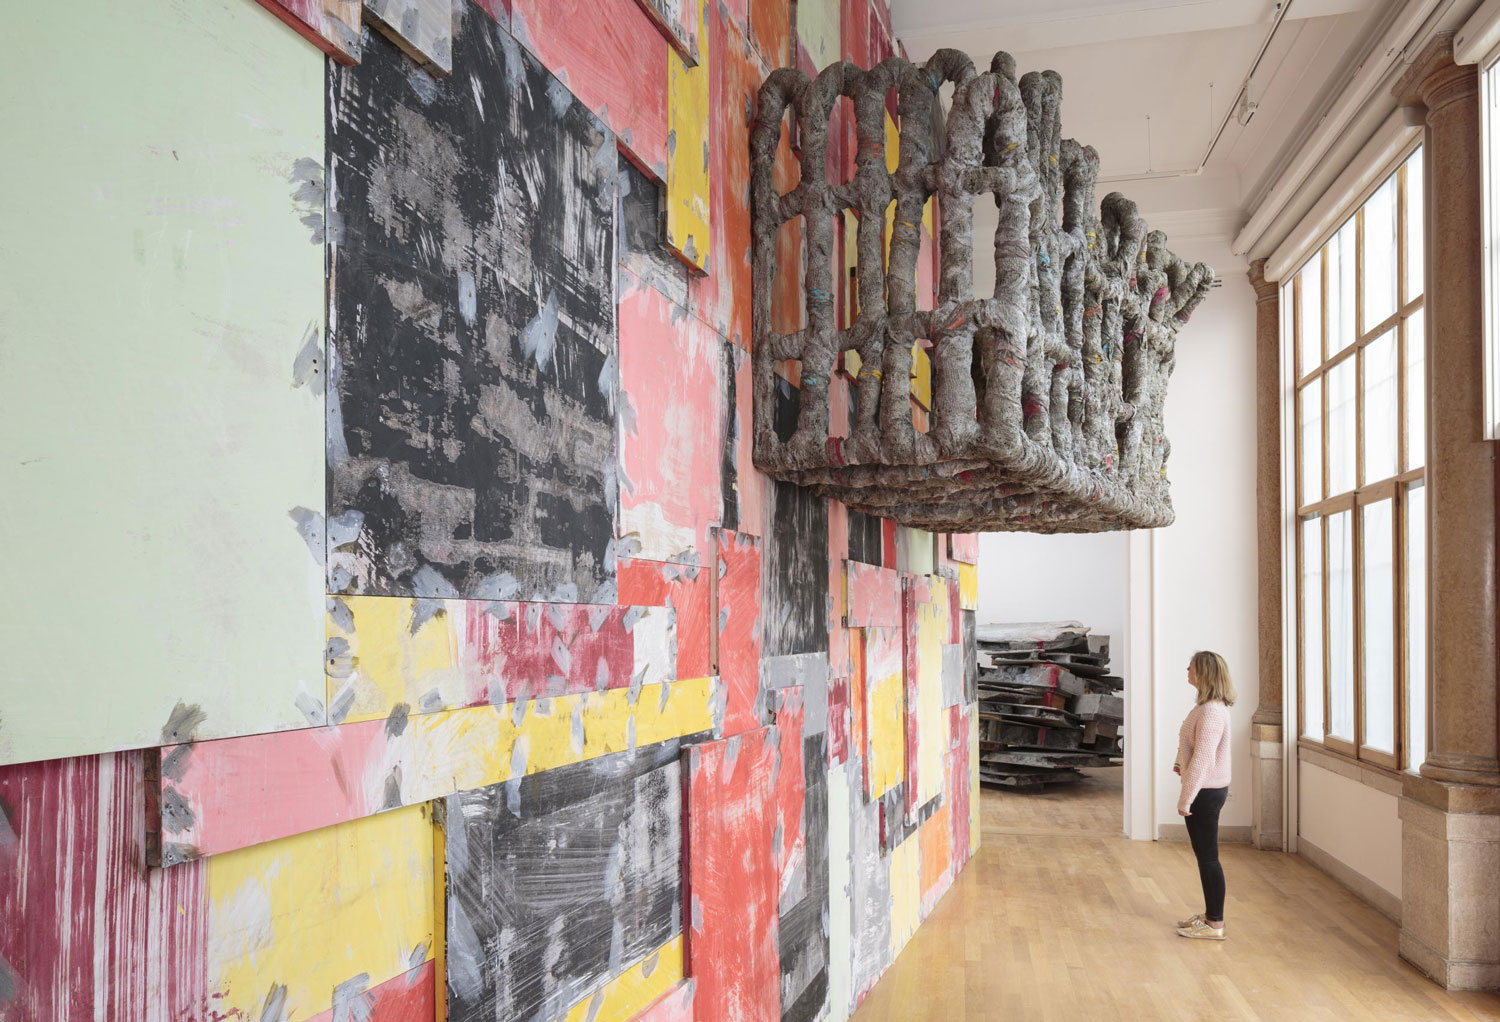 British Pavilion, Phyllida Barlow at Venice Biennale 2017 | Yellowtrace